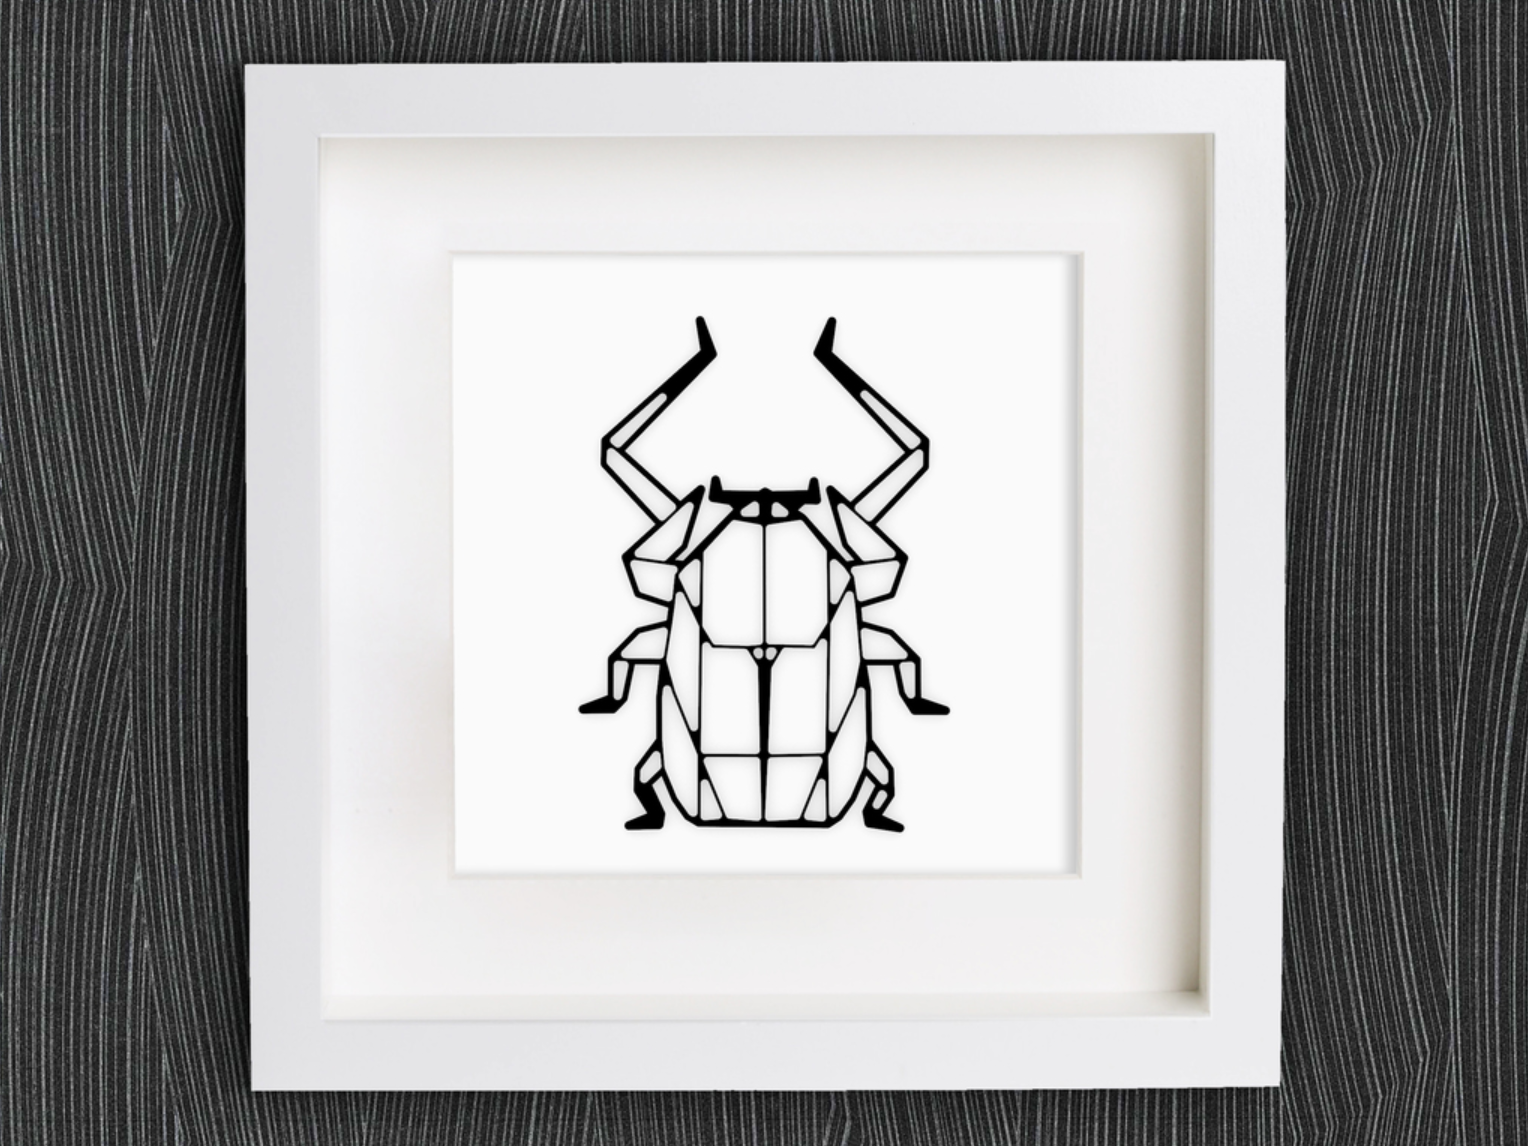 Capture d'écran 2018-01-15 à 14.06.15.png Download free STL file Customizable Origami Scarab • 3D print template, MightyNozzle